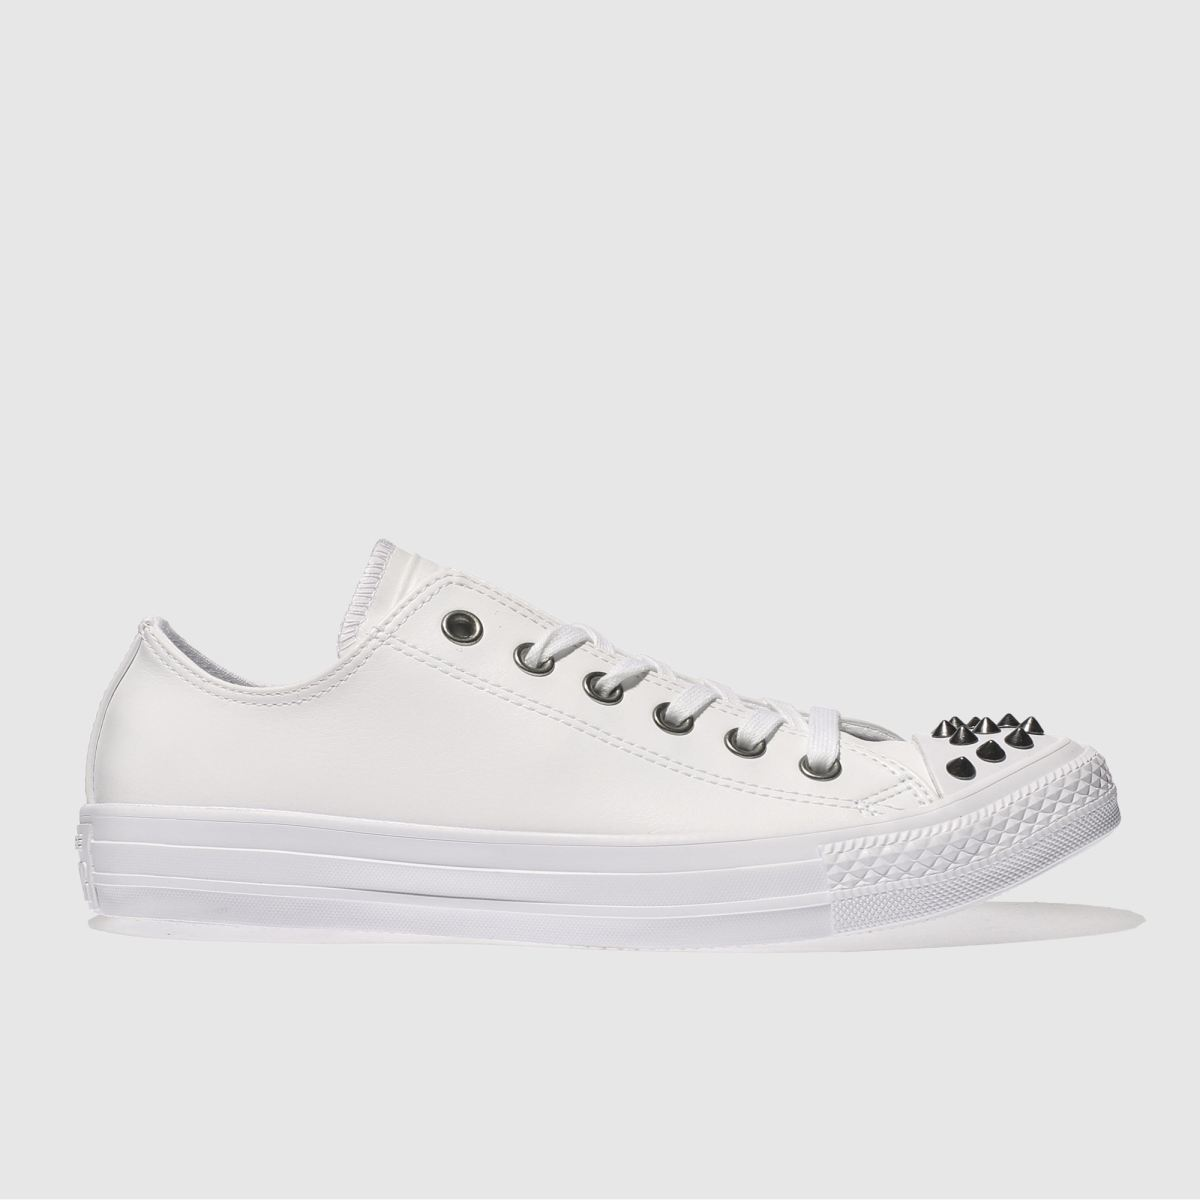 Converse White Chuck Taylor All Star Studs Ox Trainers